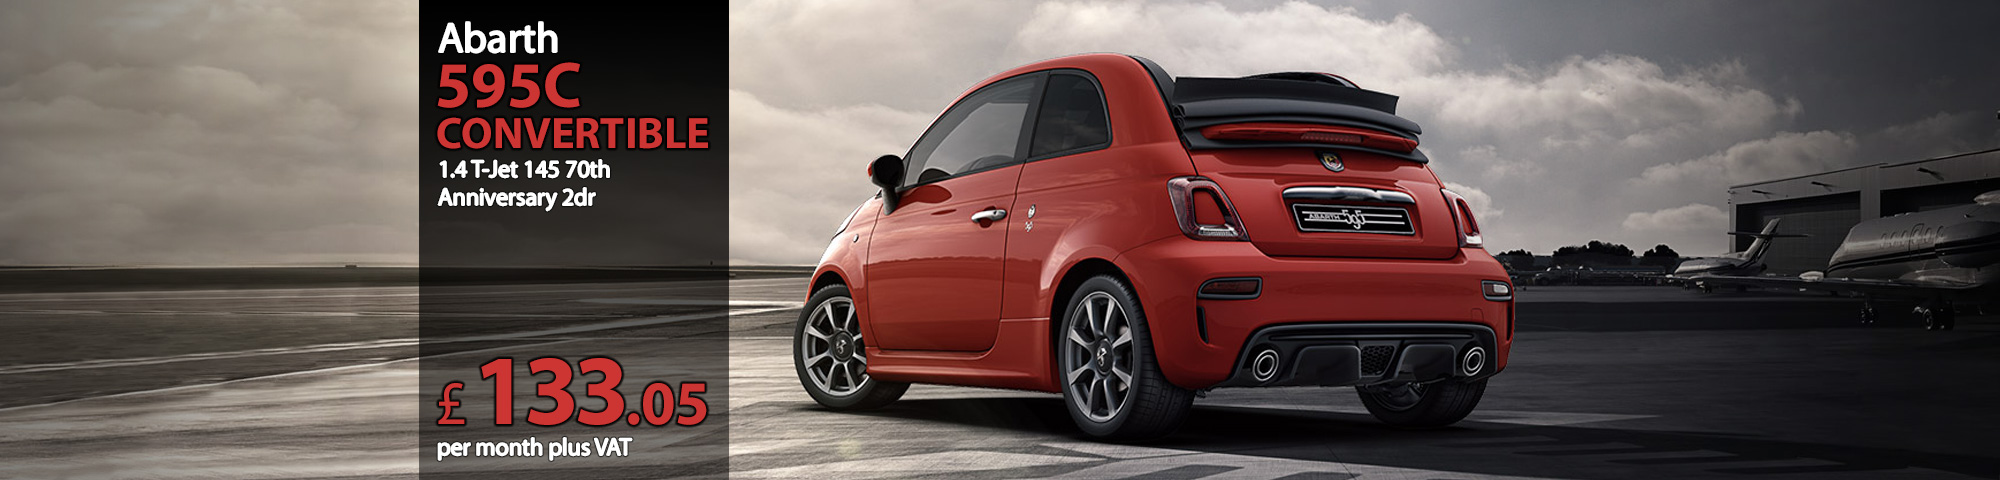 Abarth 595C Convertible 1.4 T-Jet 145 70th Anniversary 2dr